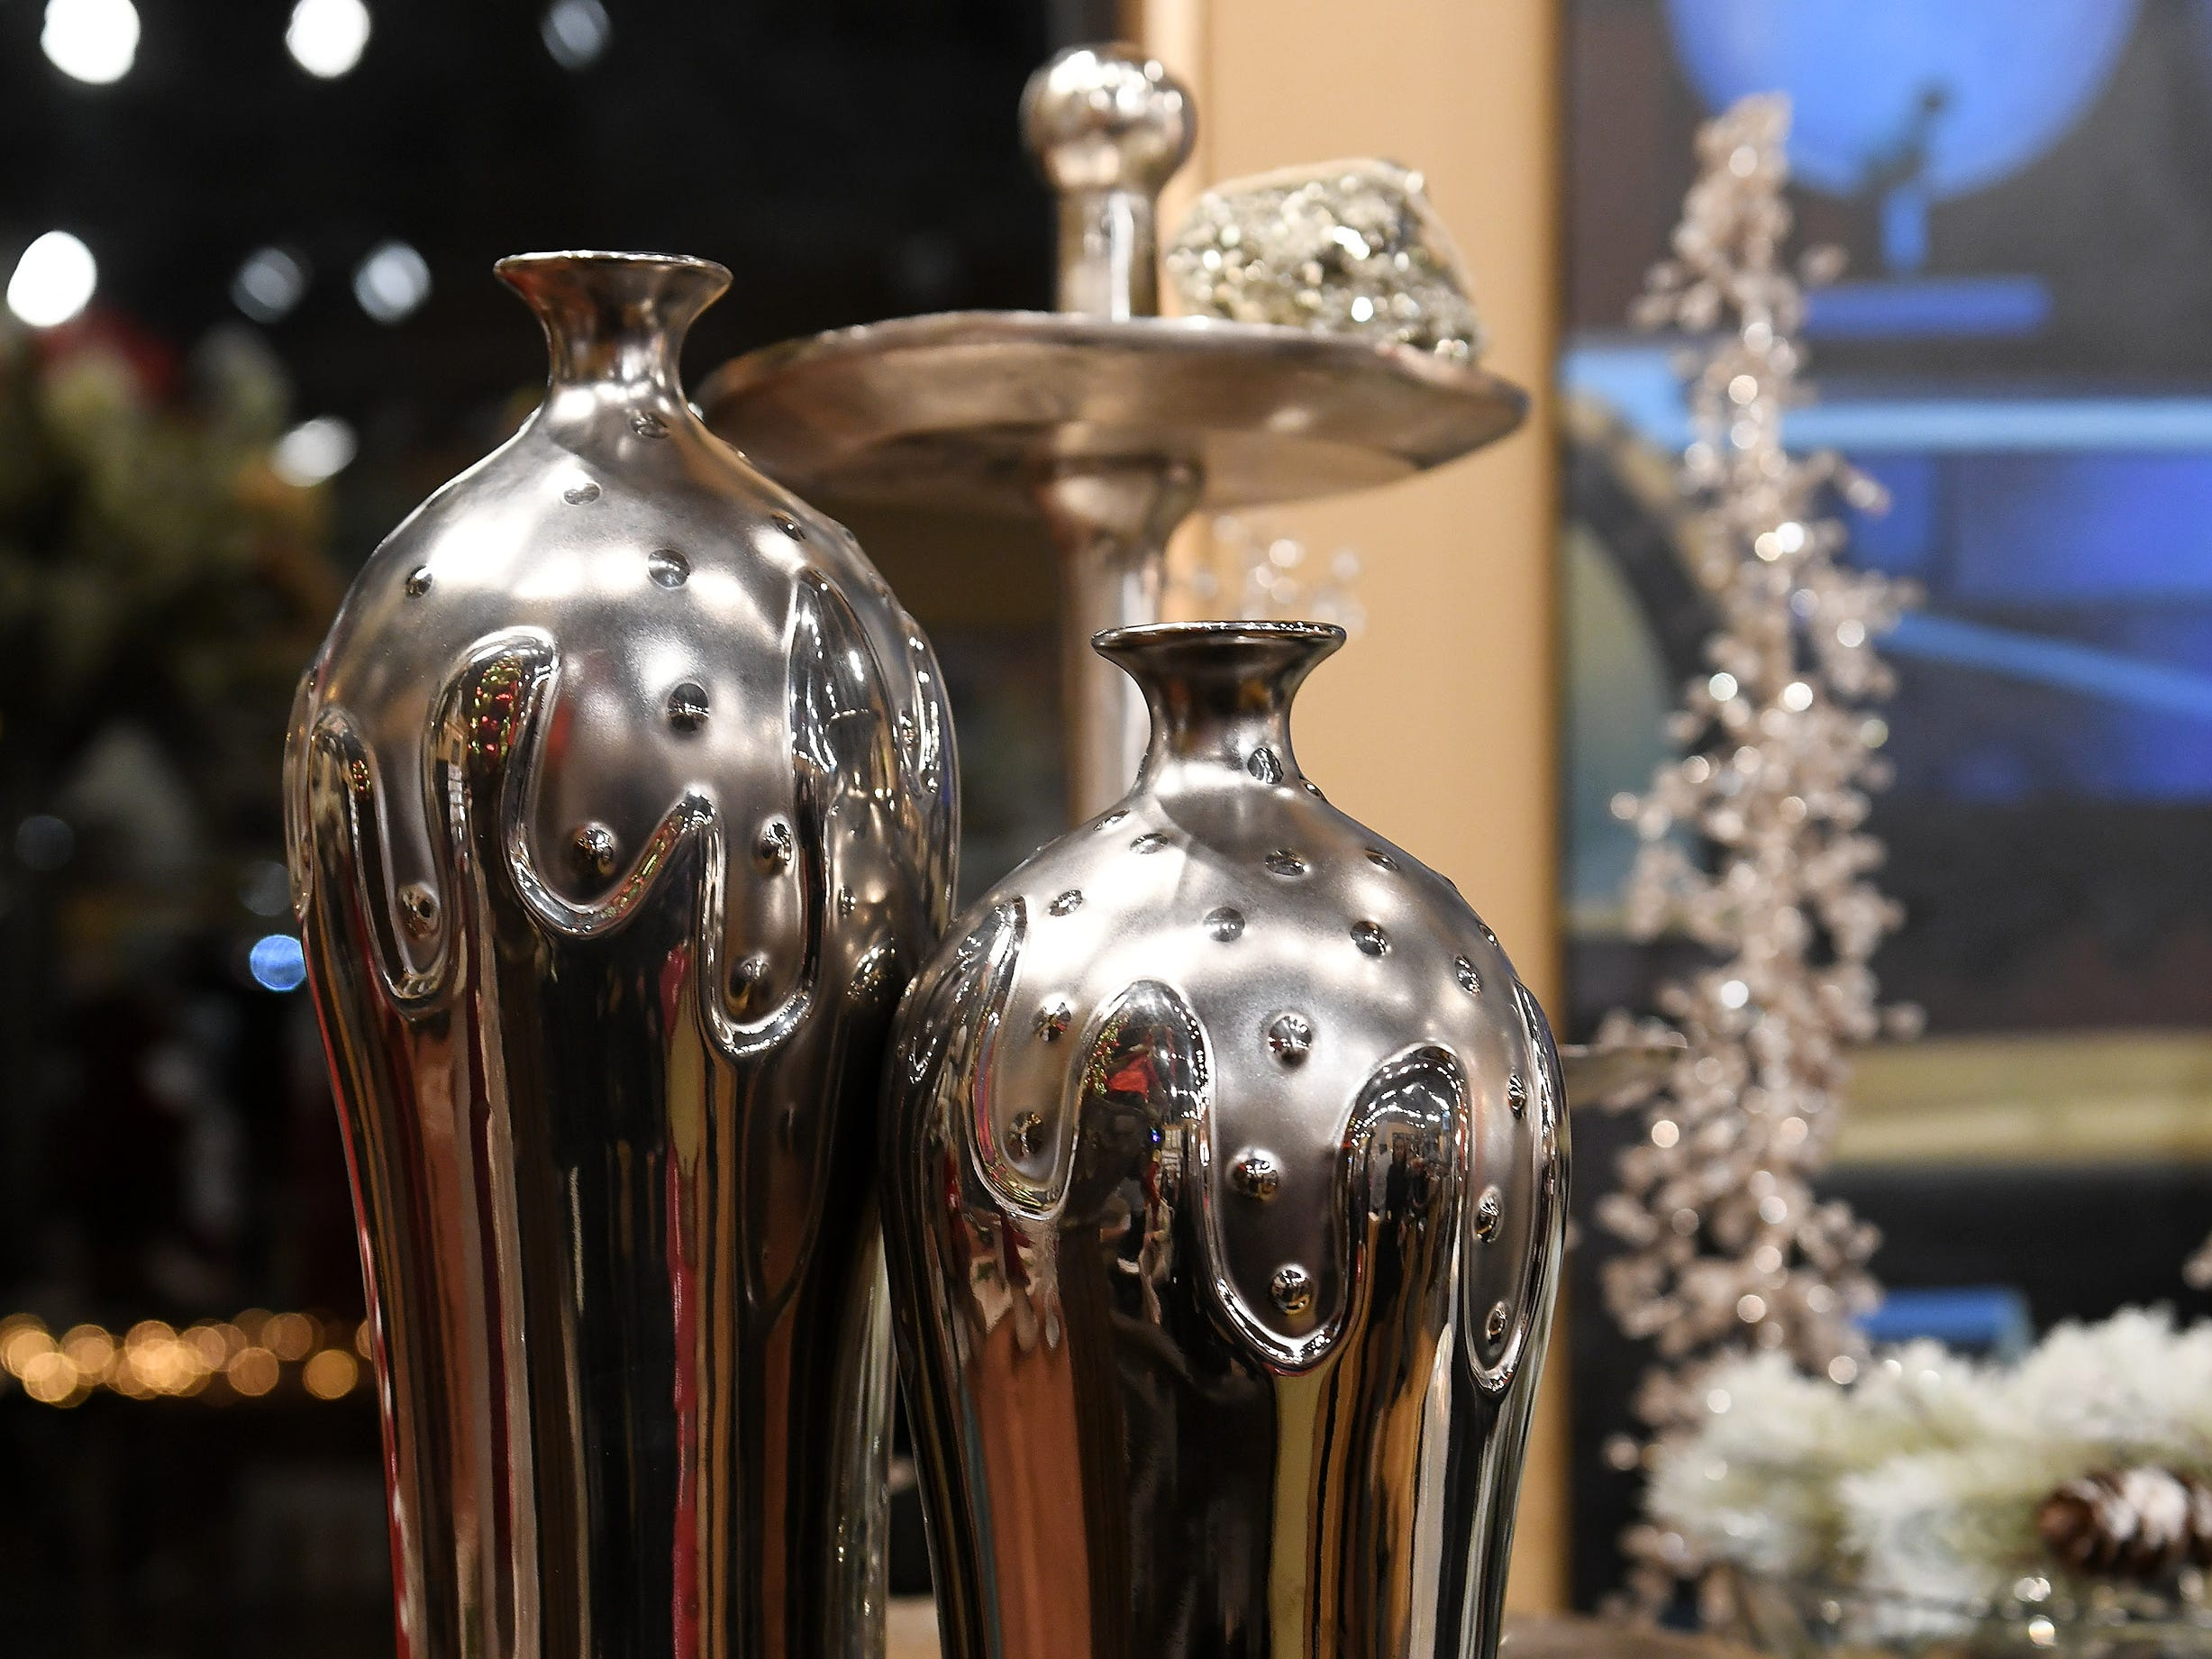 Ideas for a buffet table decor with a metallic theme created by Chef Omar Mitchell of Craft Creative Catering.